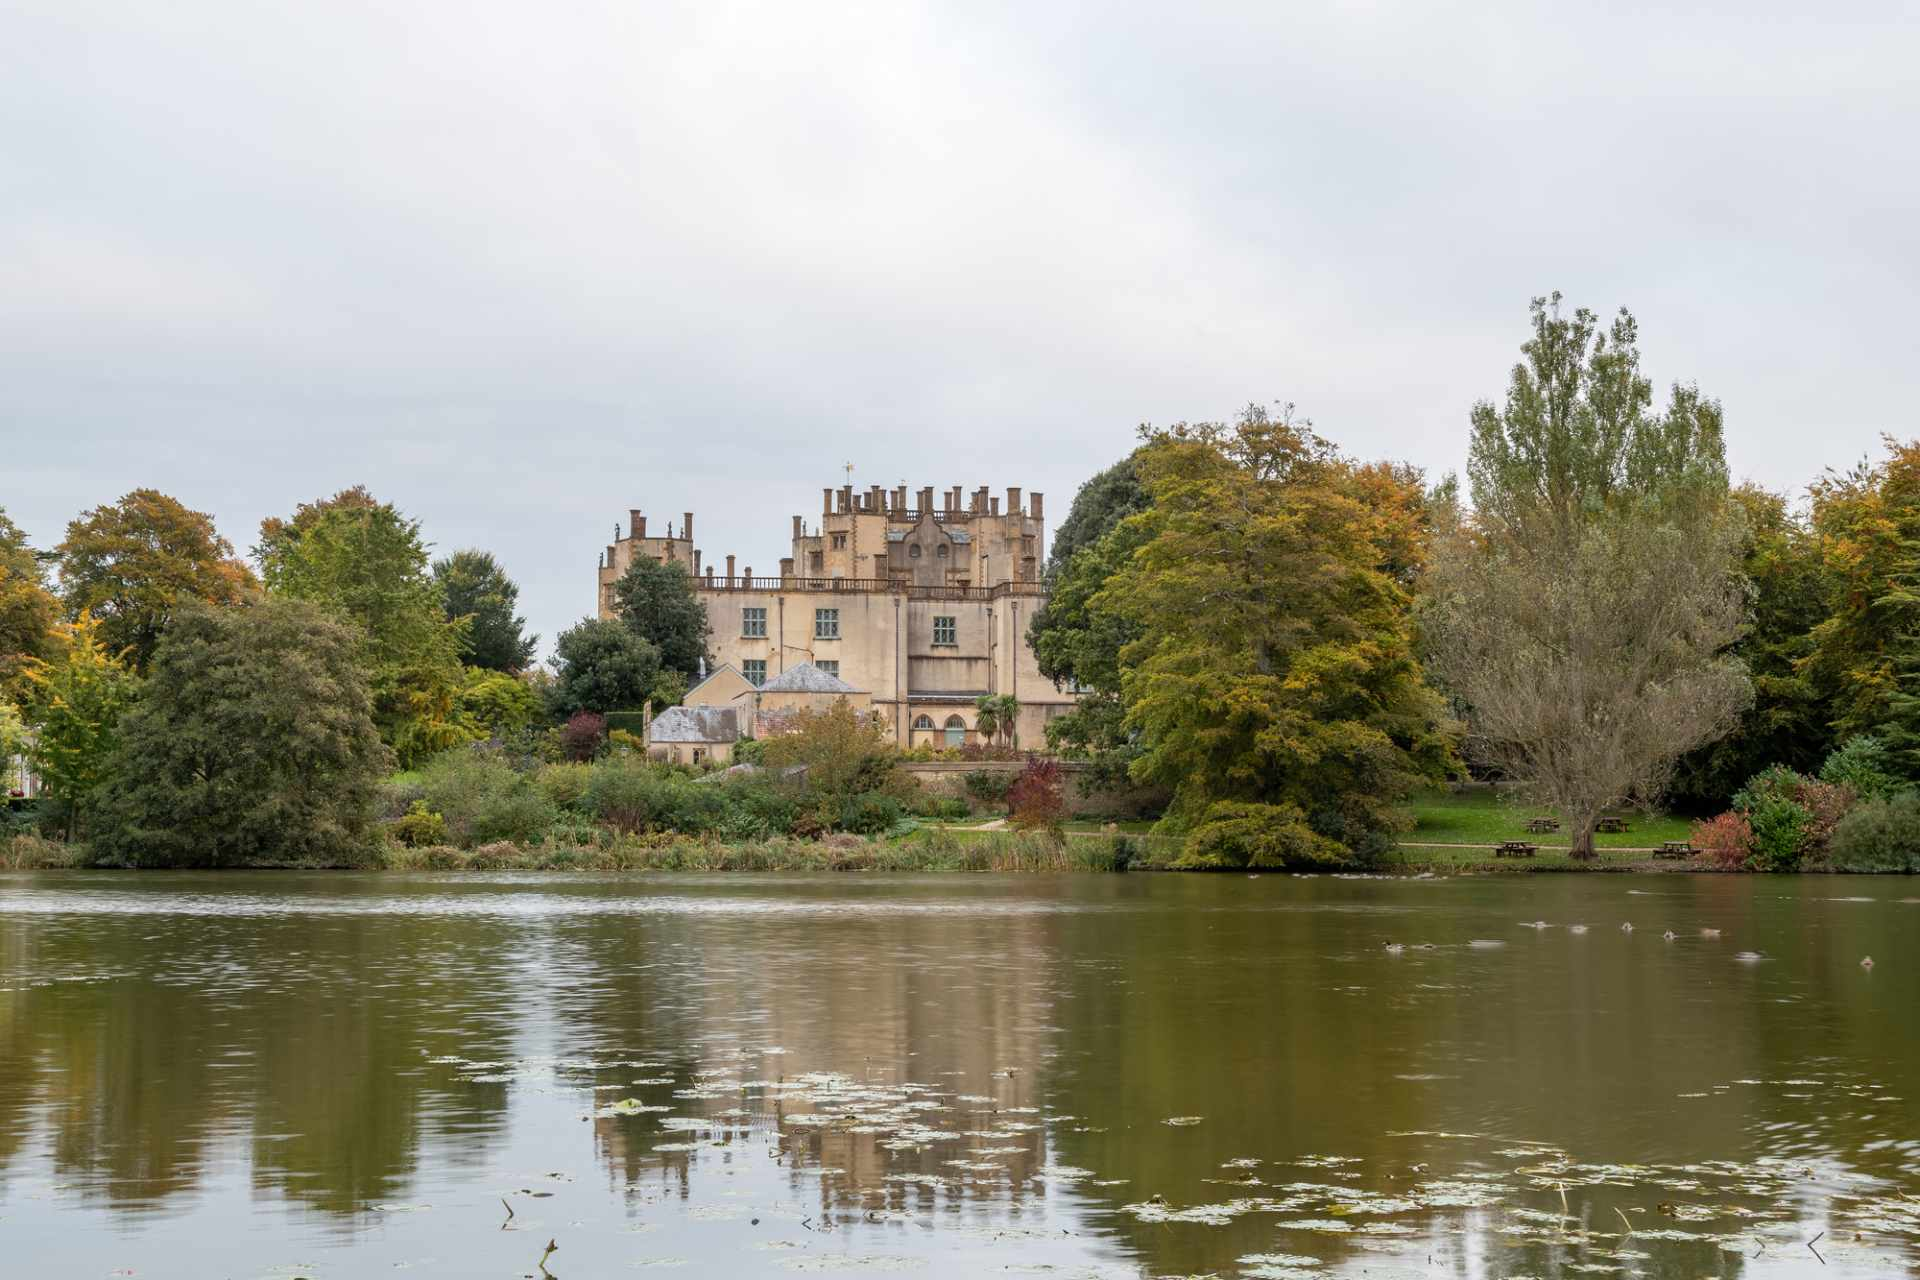 sherborne-castle-across-lake-on-cloudy-day-with-autumn-trees-on-grounds